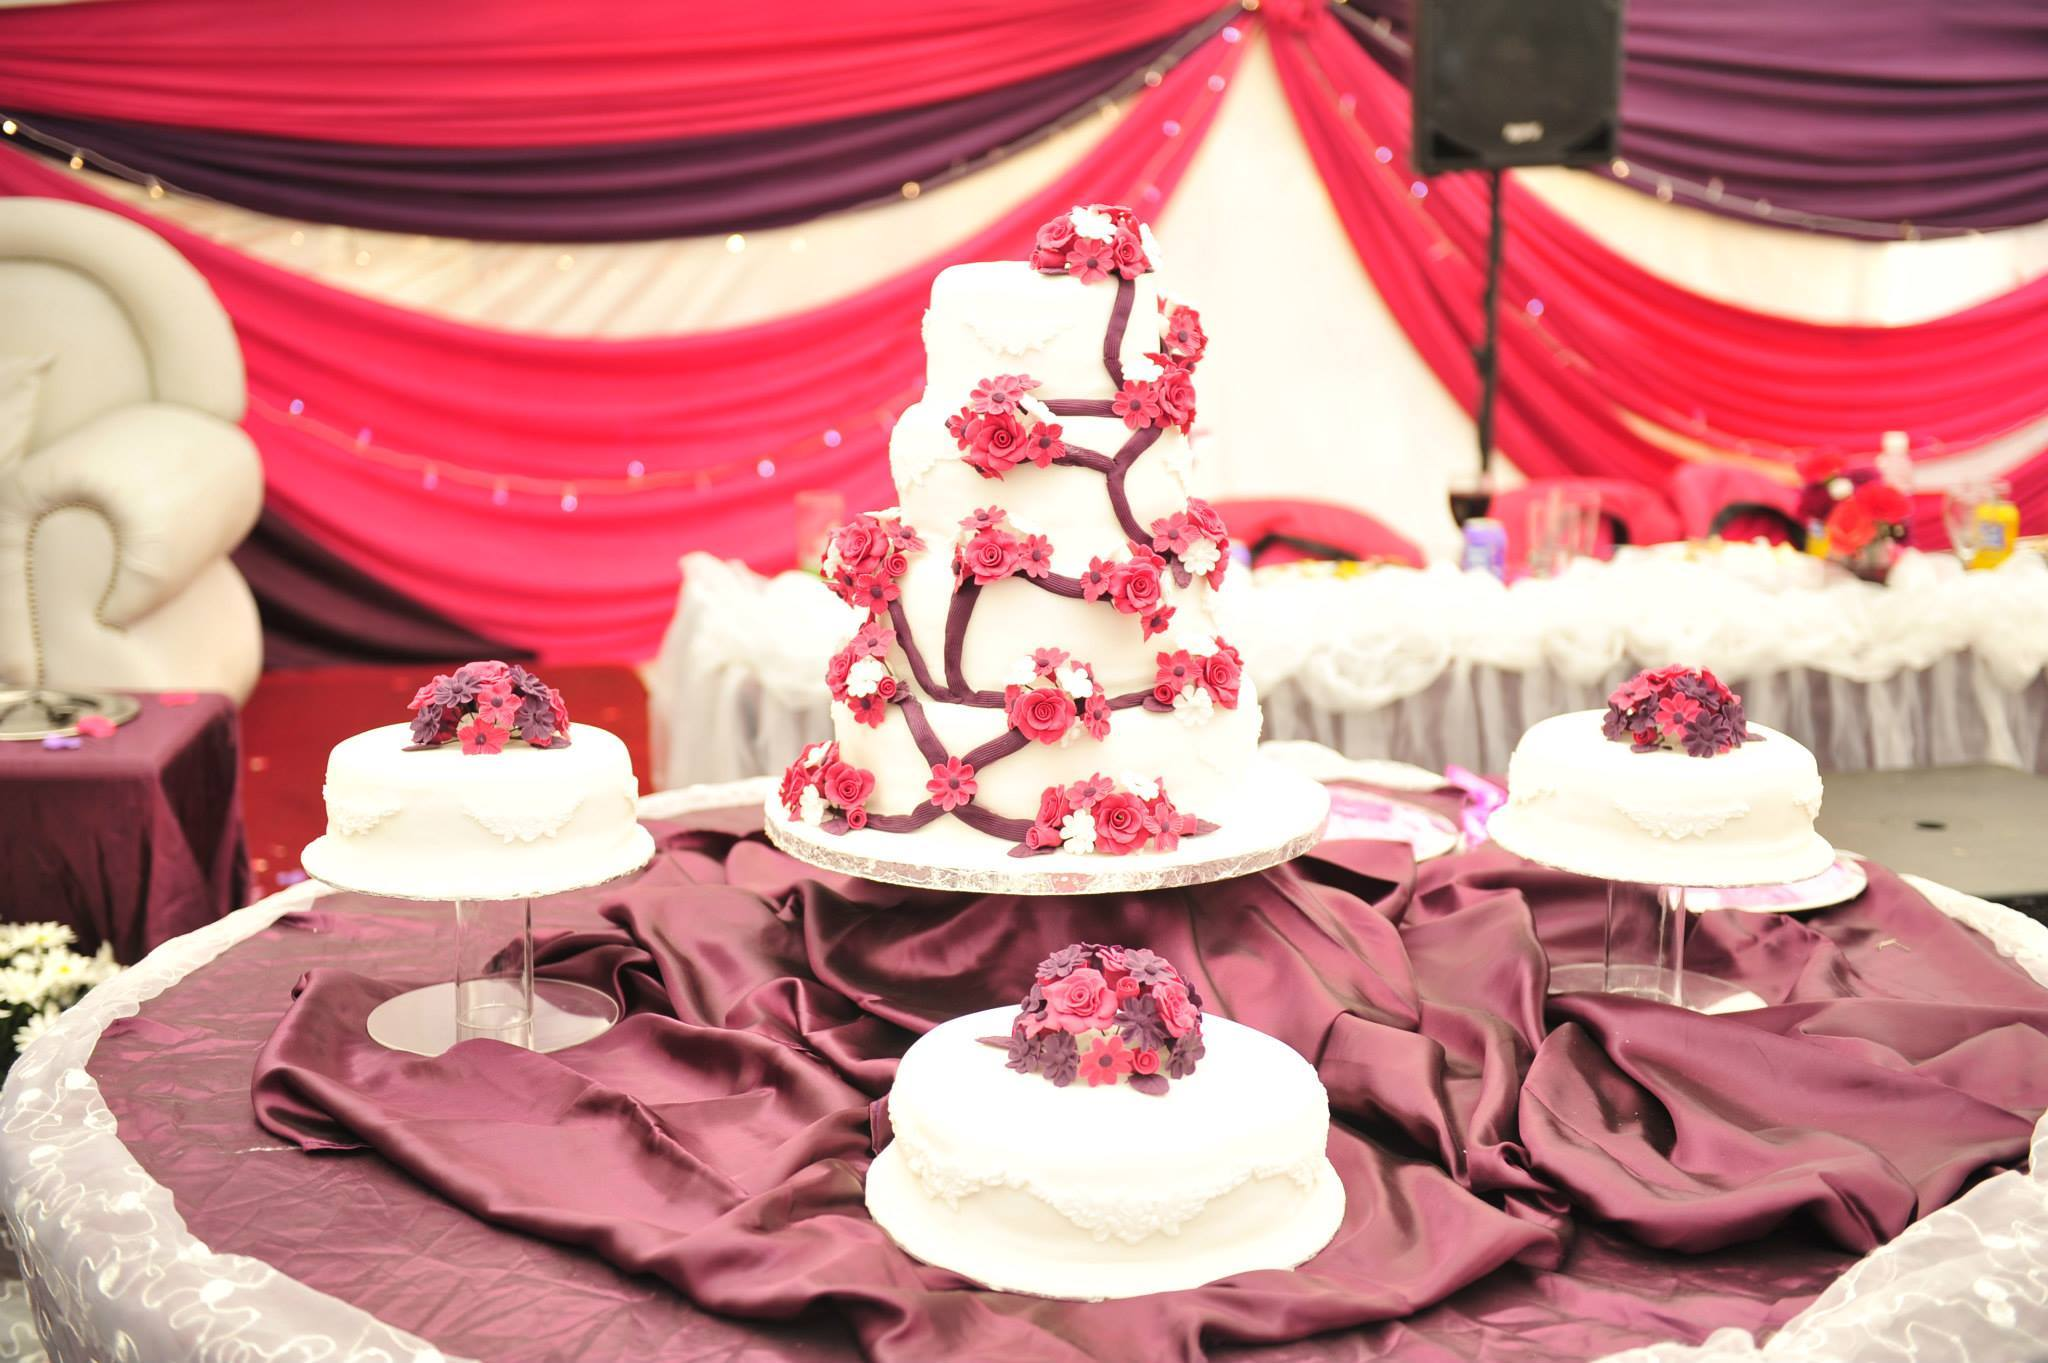 Best wedding decorations in zimbabwe astonishing zimbabwe wedding best wedding decorations in zimbabwe zimbabwe weddings junglespirit Choice Image